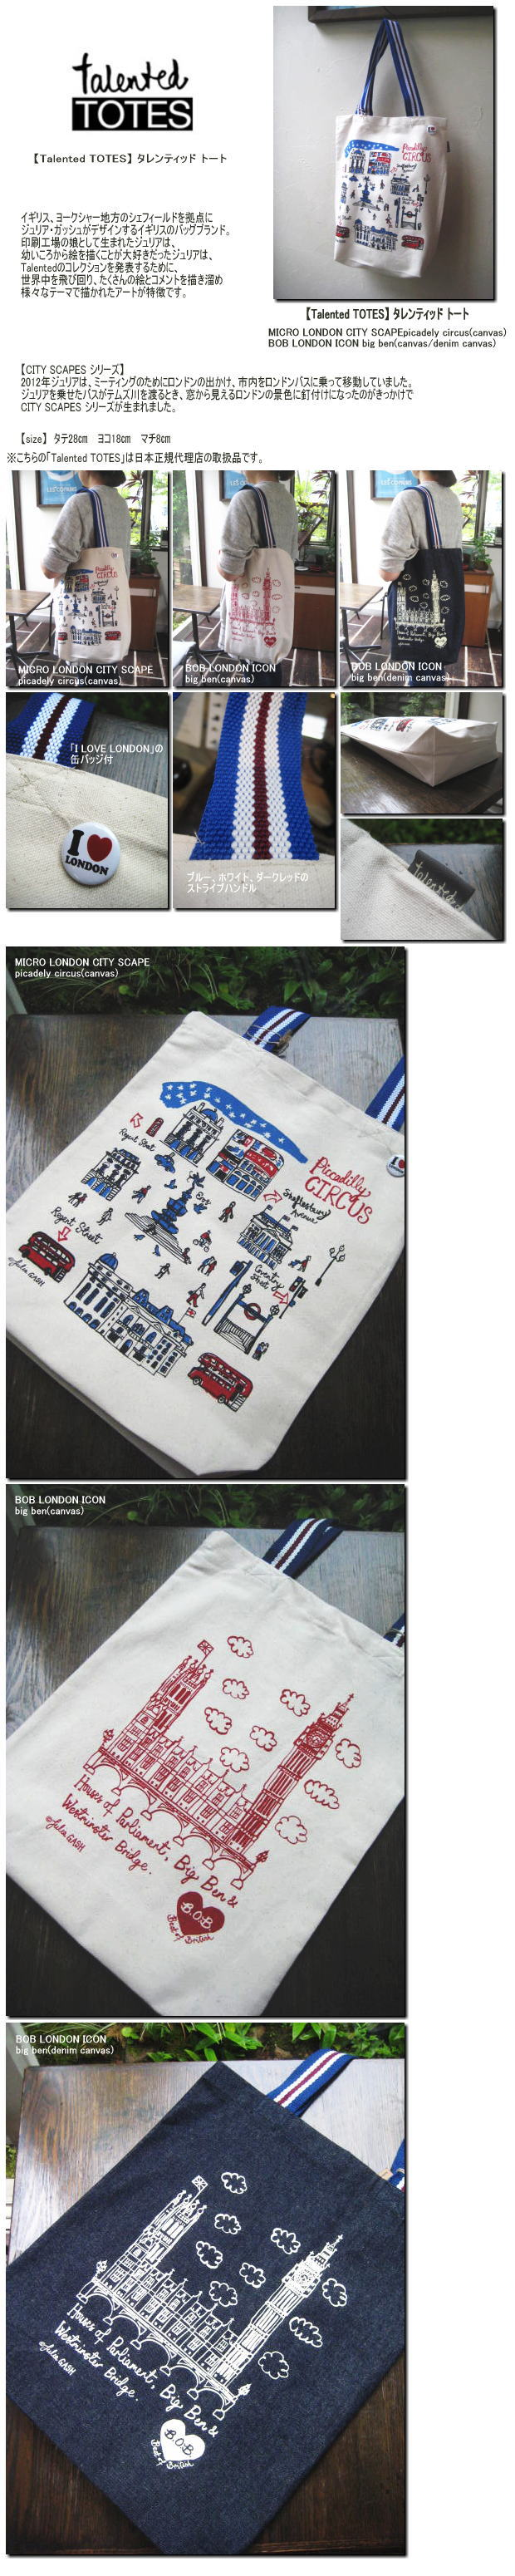 【Talented TOTES】 タレンティッド トート MICRO LONDON CITY SCAPEpicadely circus(canvas) / BOB LONDON ICON big ben(canvas / denim canvas)